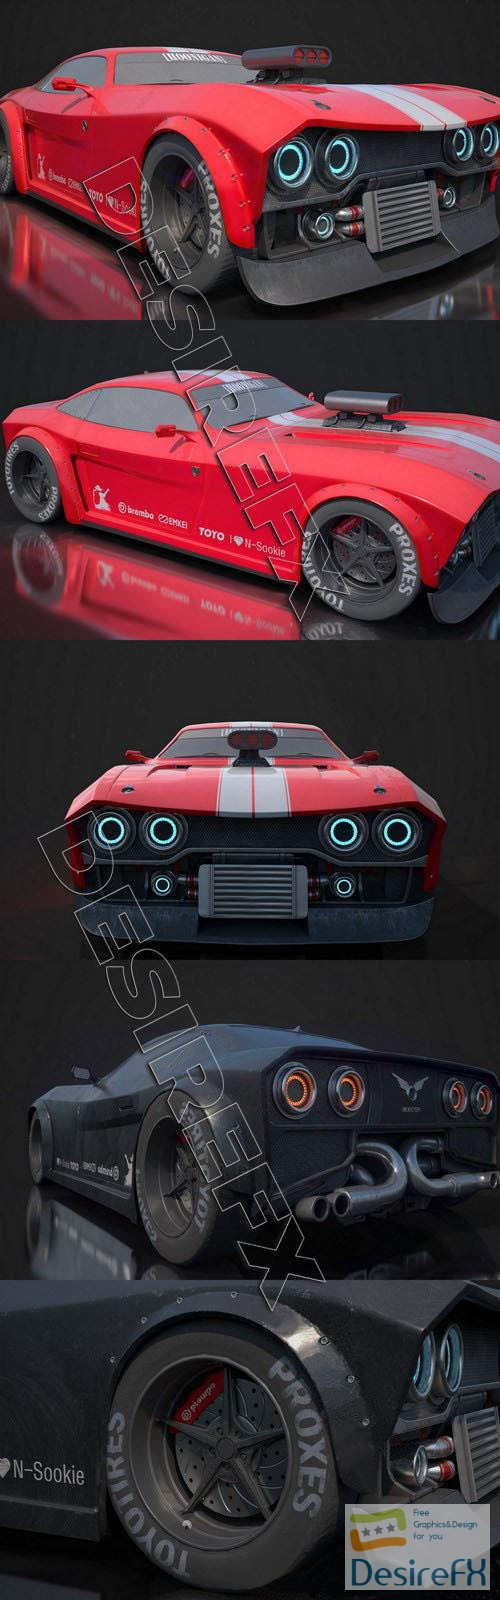 3d-models - CyberPunk 2077 CAR Concept 3D Model